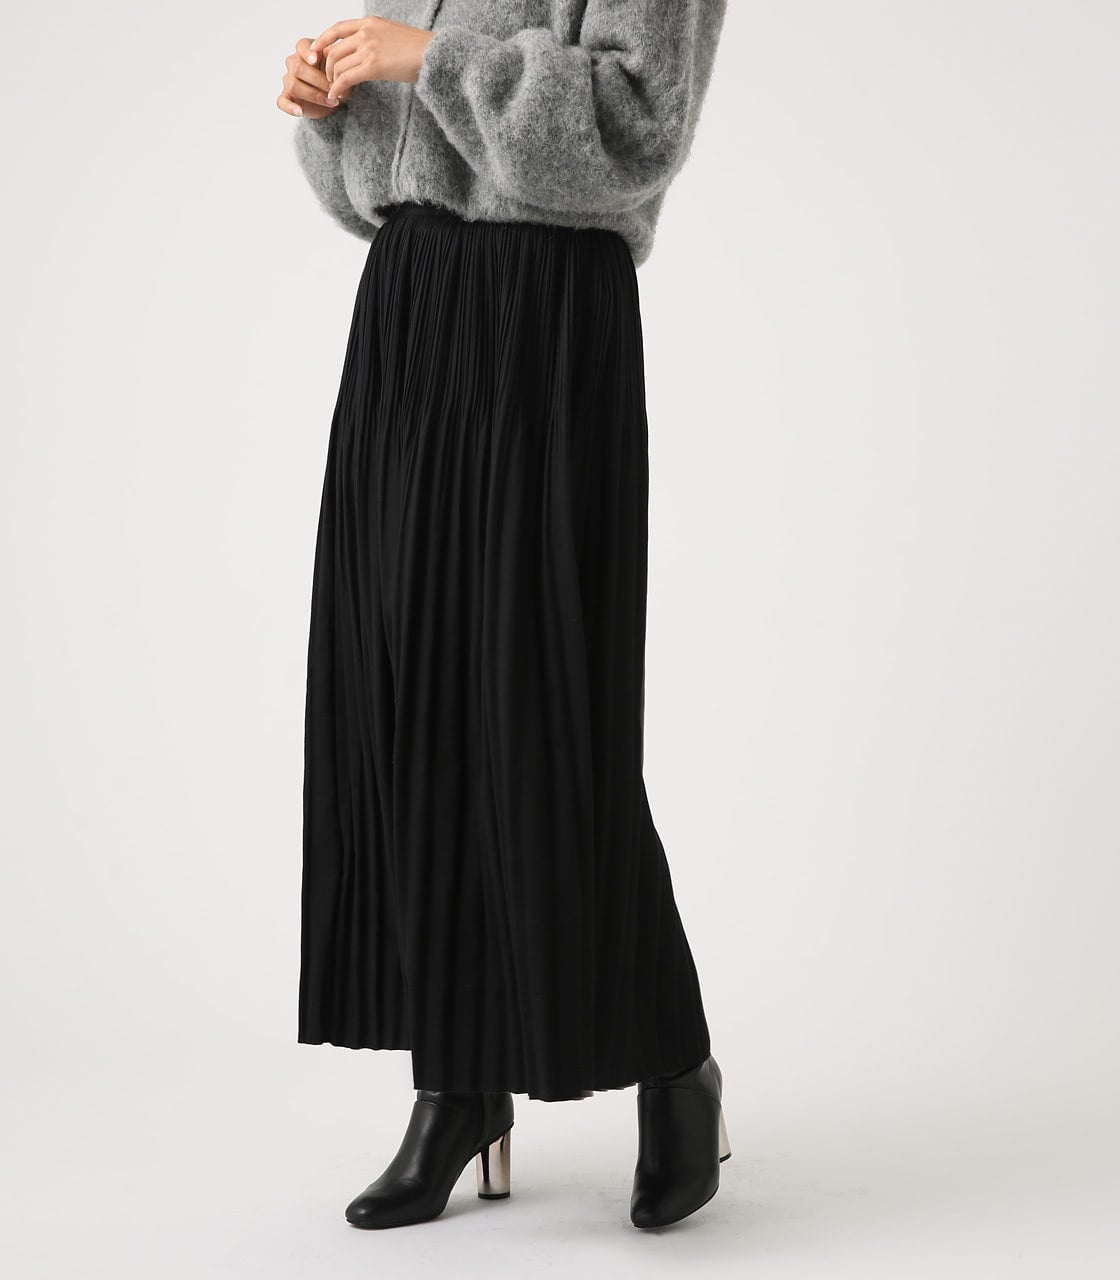 【AZUL BY MOUSSY】ベーシックプリーツスカート 詳細画像 BLK 1